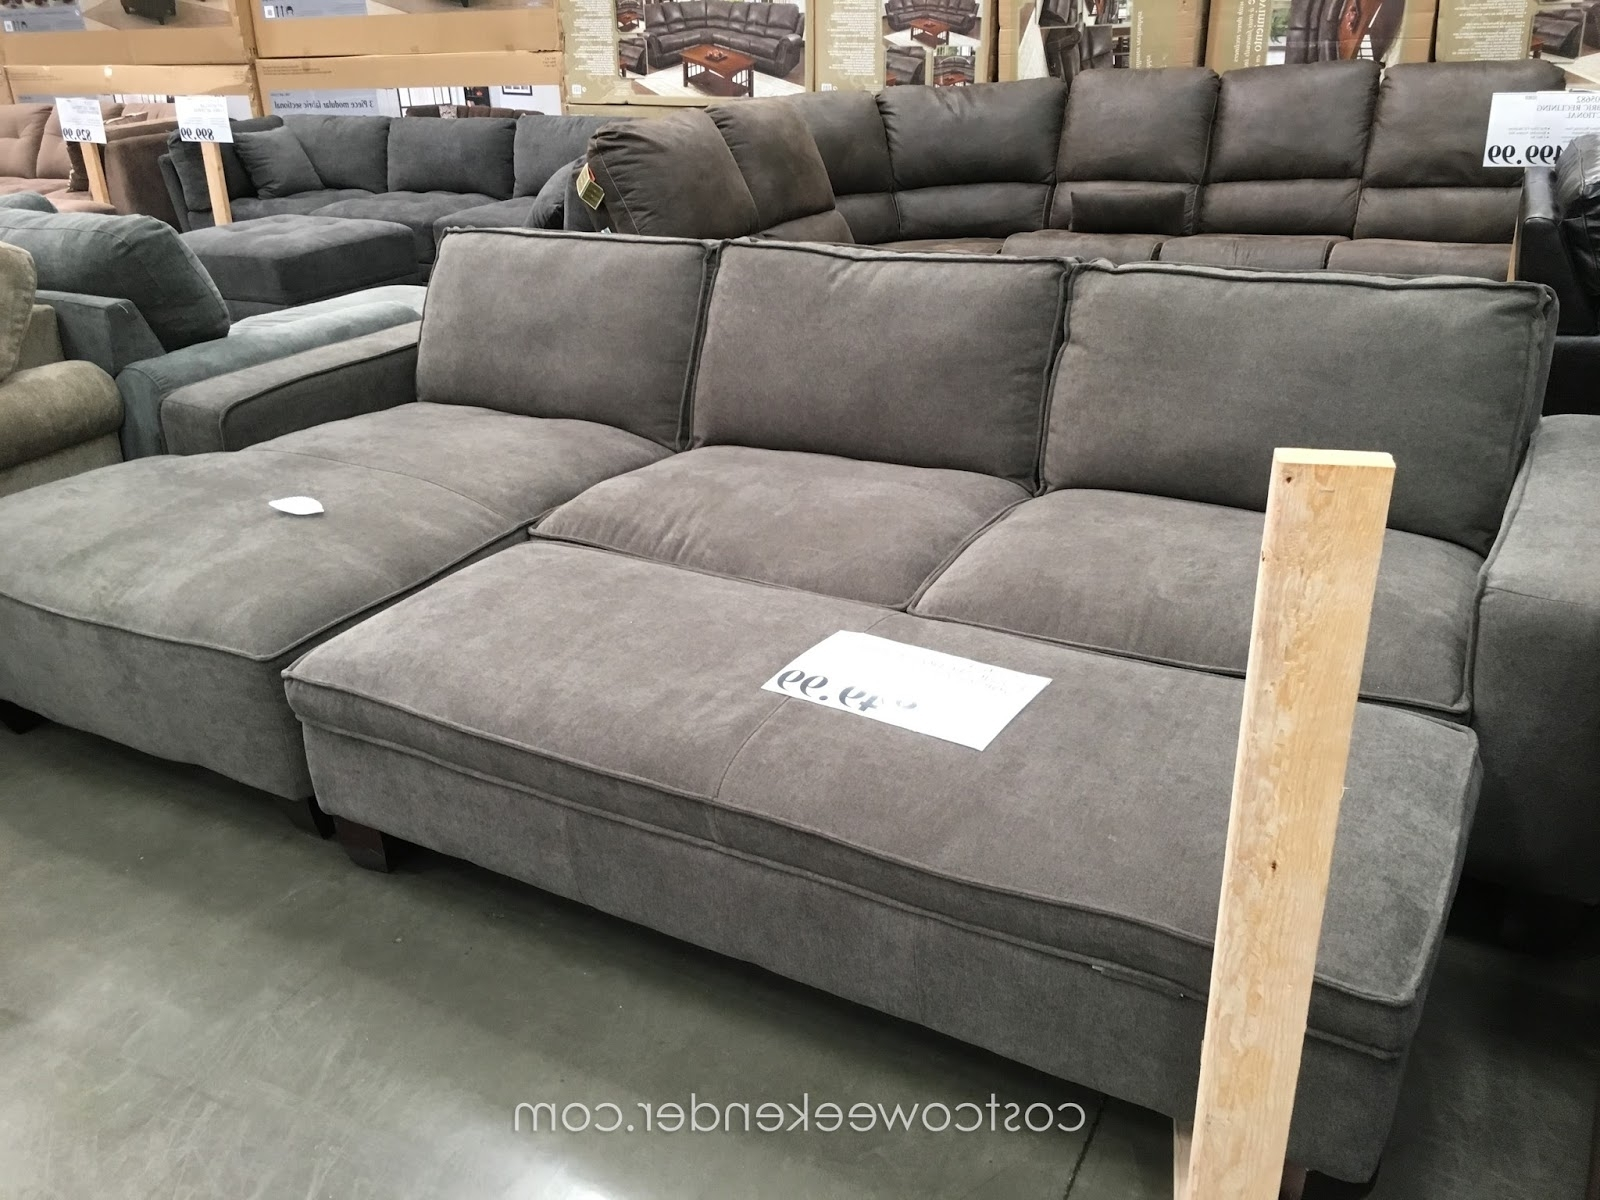 Latest Sectional Sofa Design: Sectional Sofa With Chaise And Ottoman Regarding Sofas With Chaise And Ottoman (View 2 of 15)